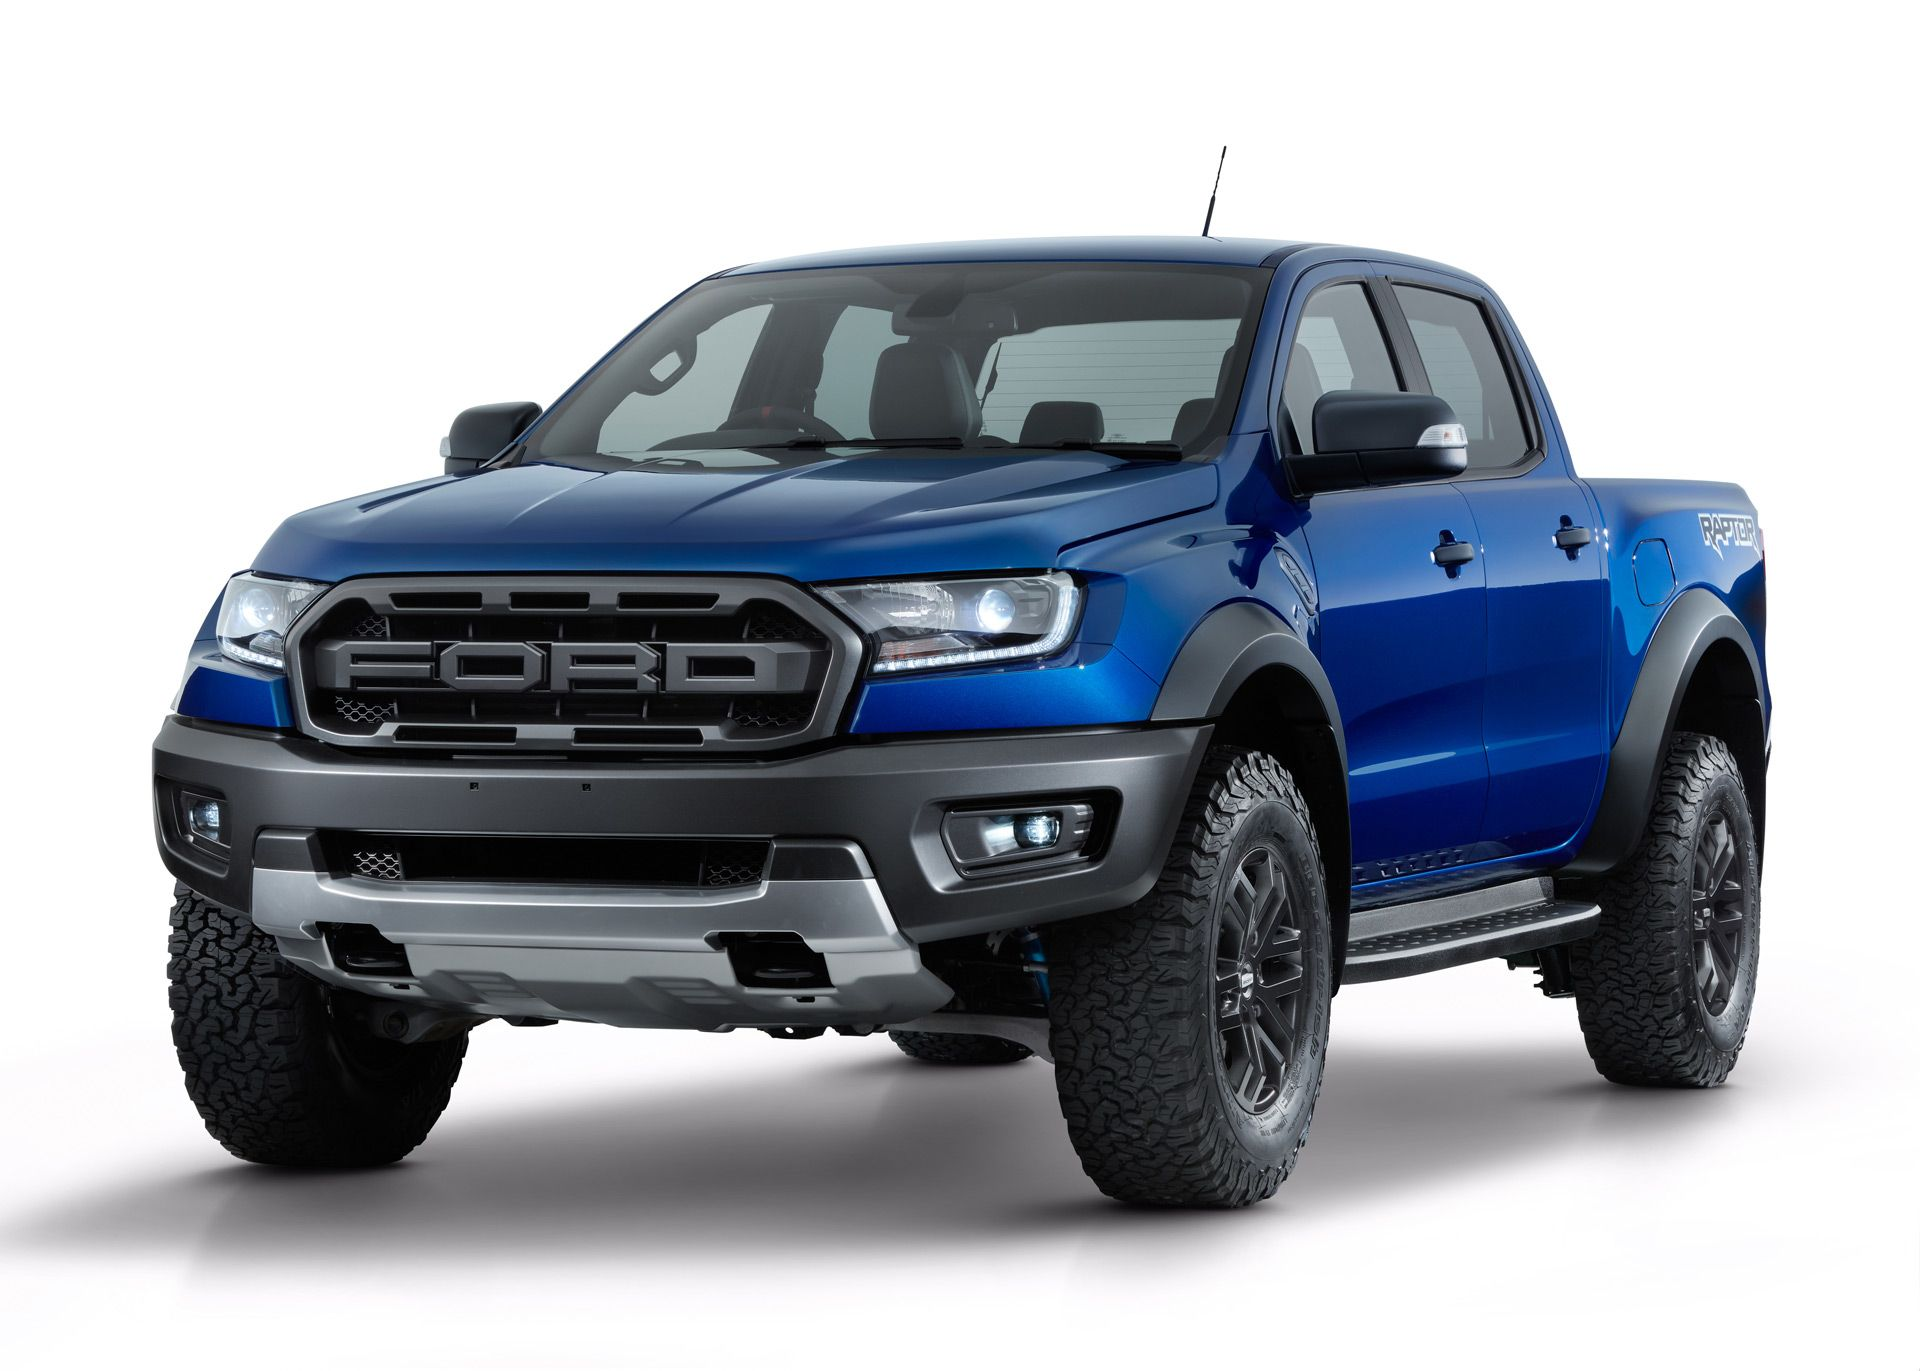 2019 Ford Ranger Raptor Debuts With 210 Horsepower Diesel Em 2020